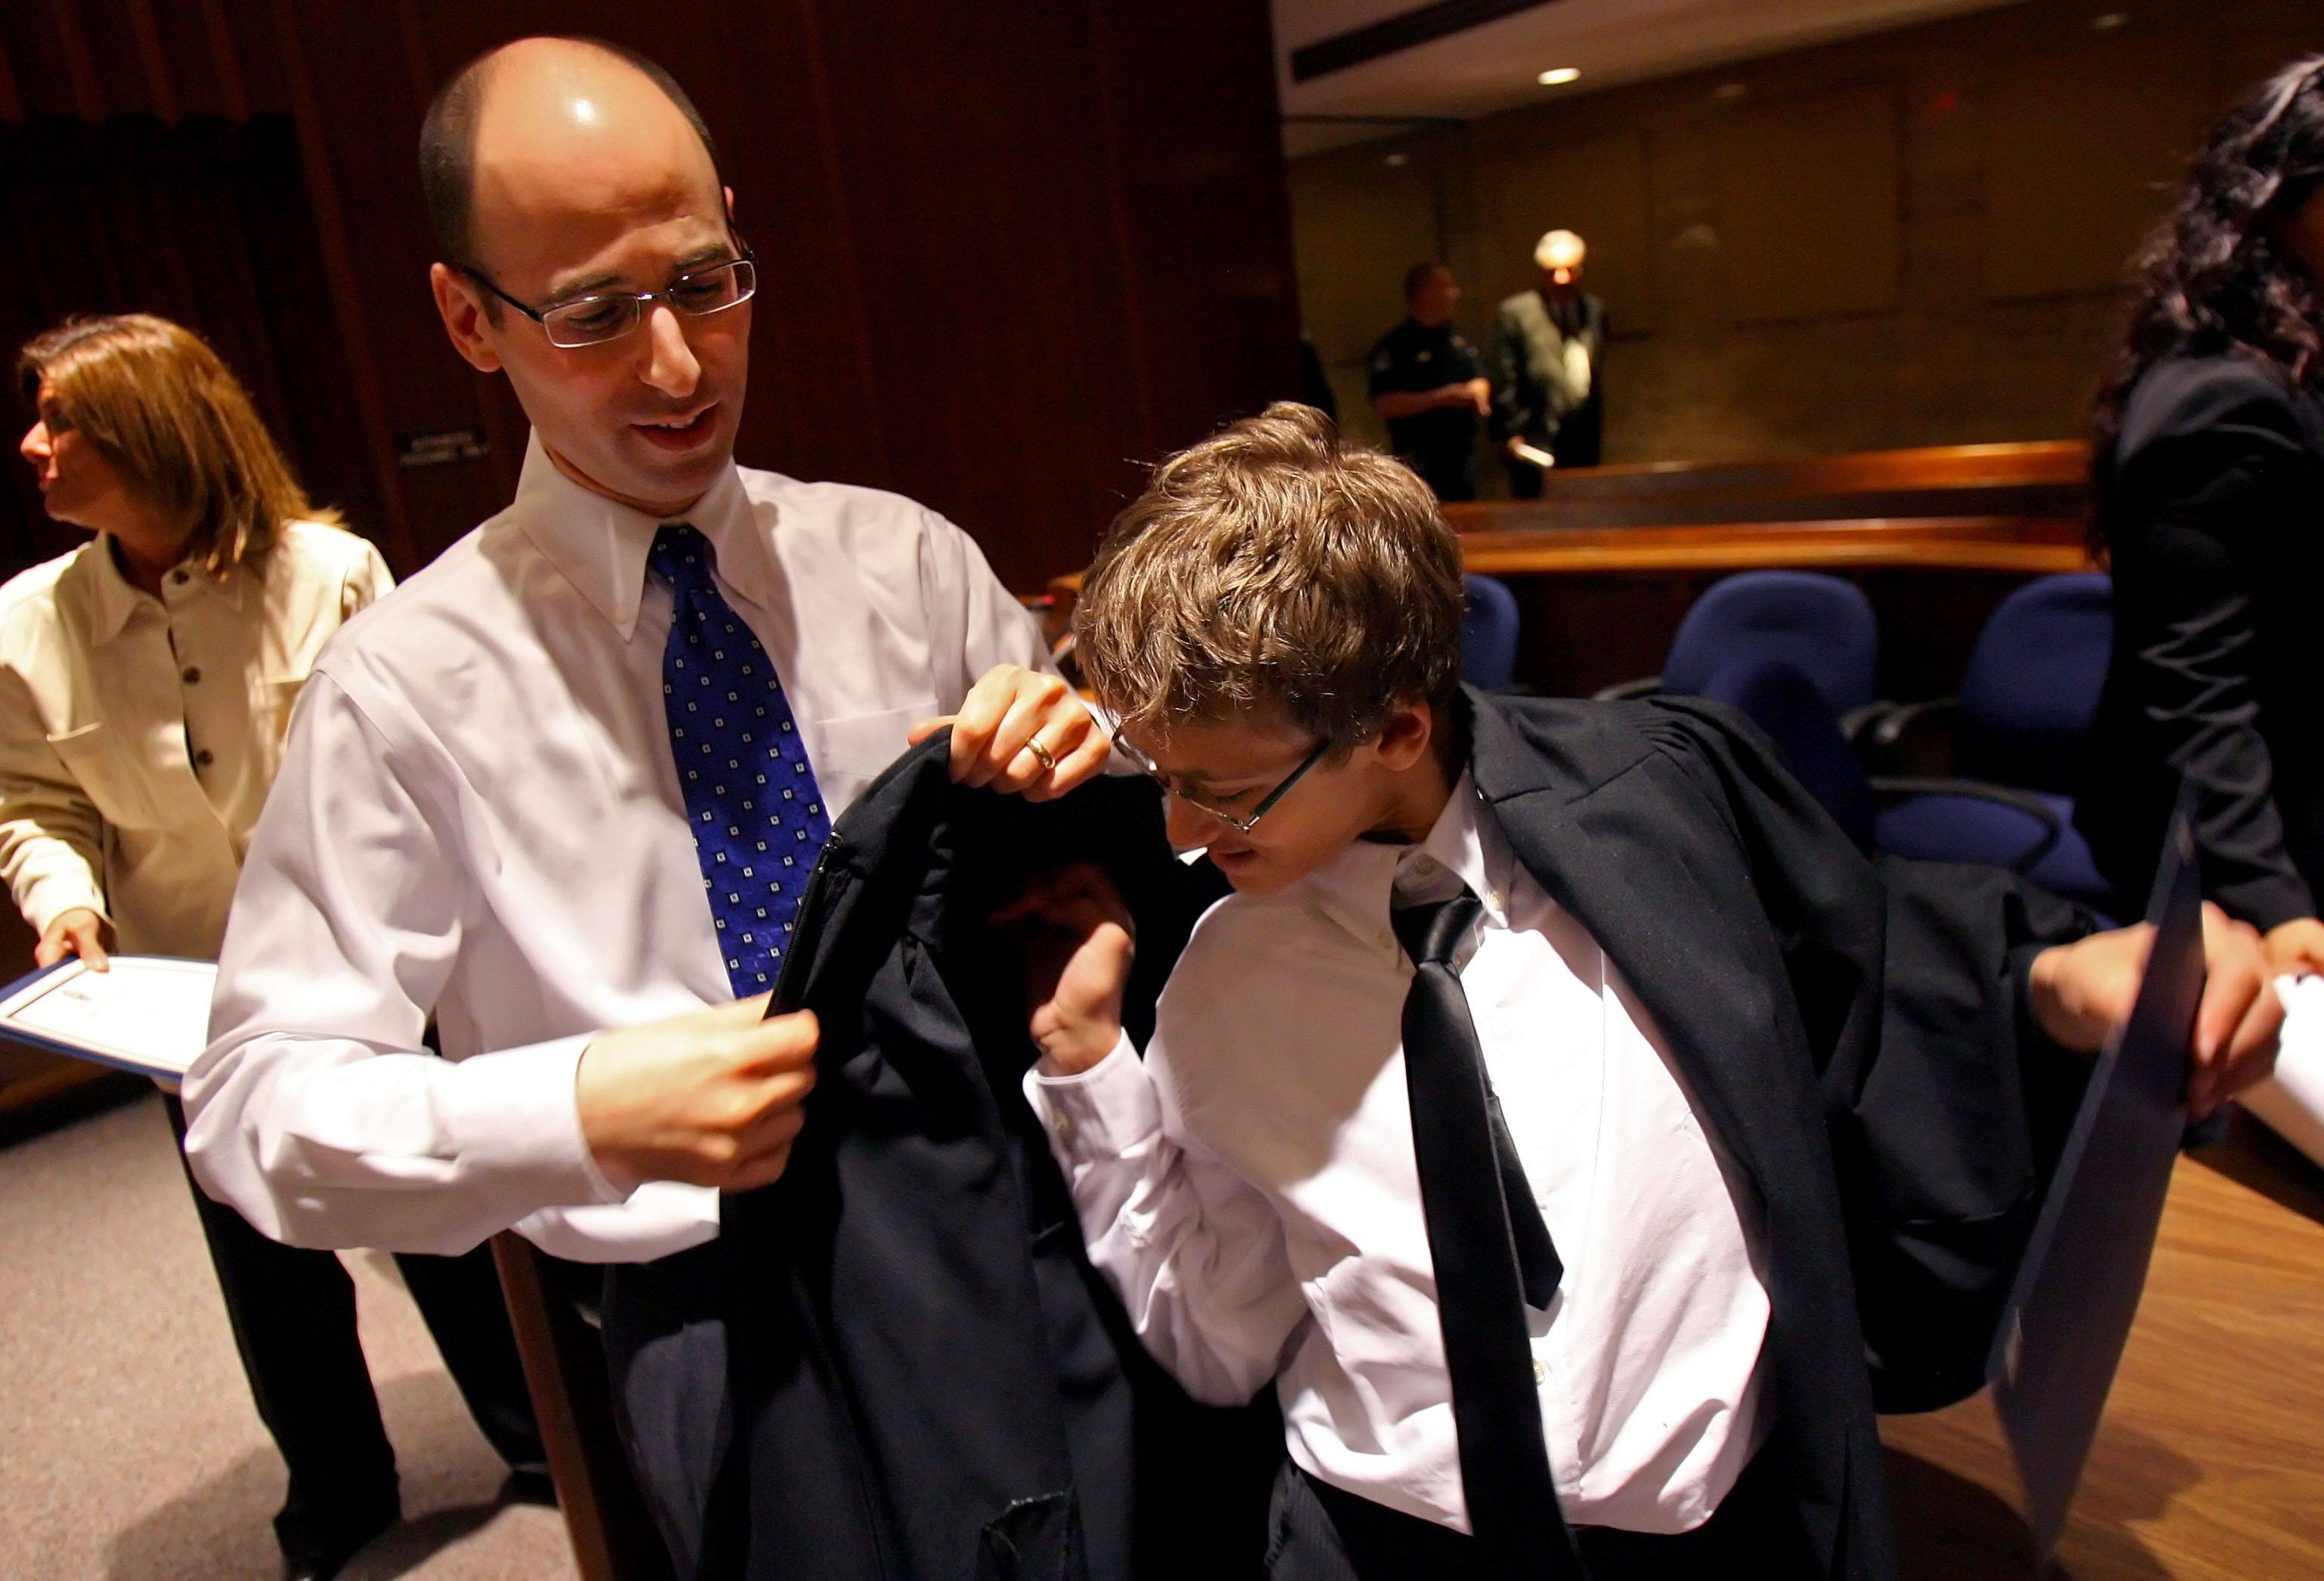 Judge Daniel B. Shanes helps Fremont Middle School eighth-grader Dennis Lind try on his robe as part of a recognition ceremony for kids who were successful in making better choices. Kids honored at the Lake County Courthouse were from Carl Sandburg, Fremont and West Oak middle schools.